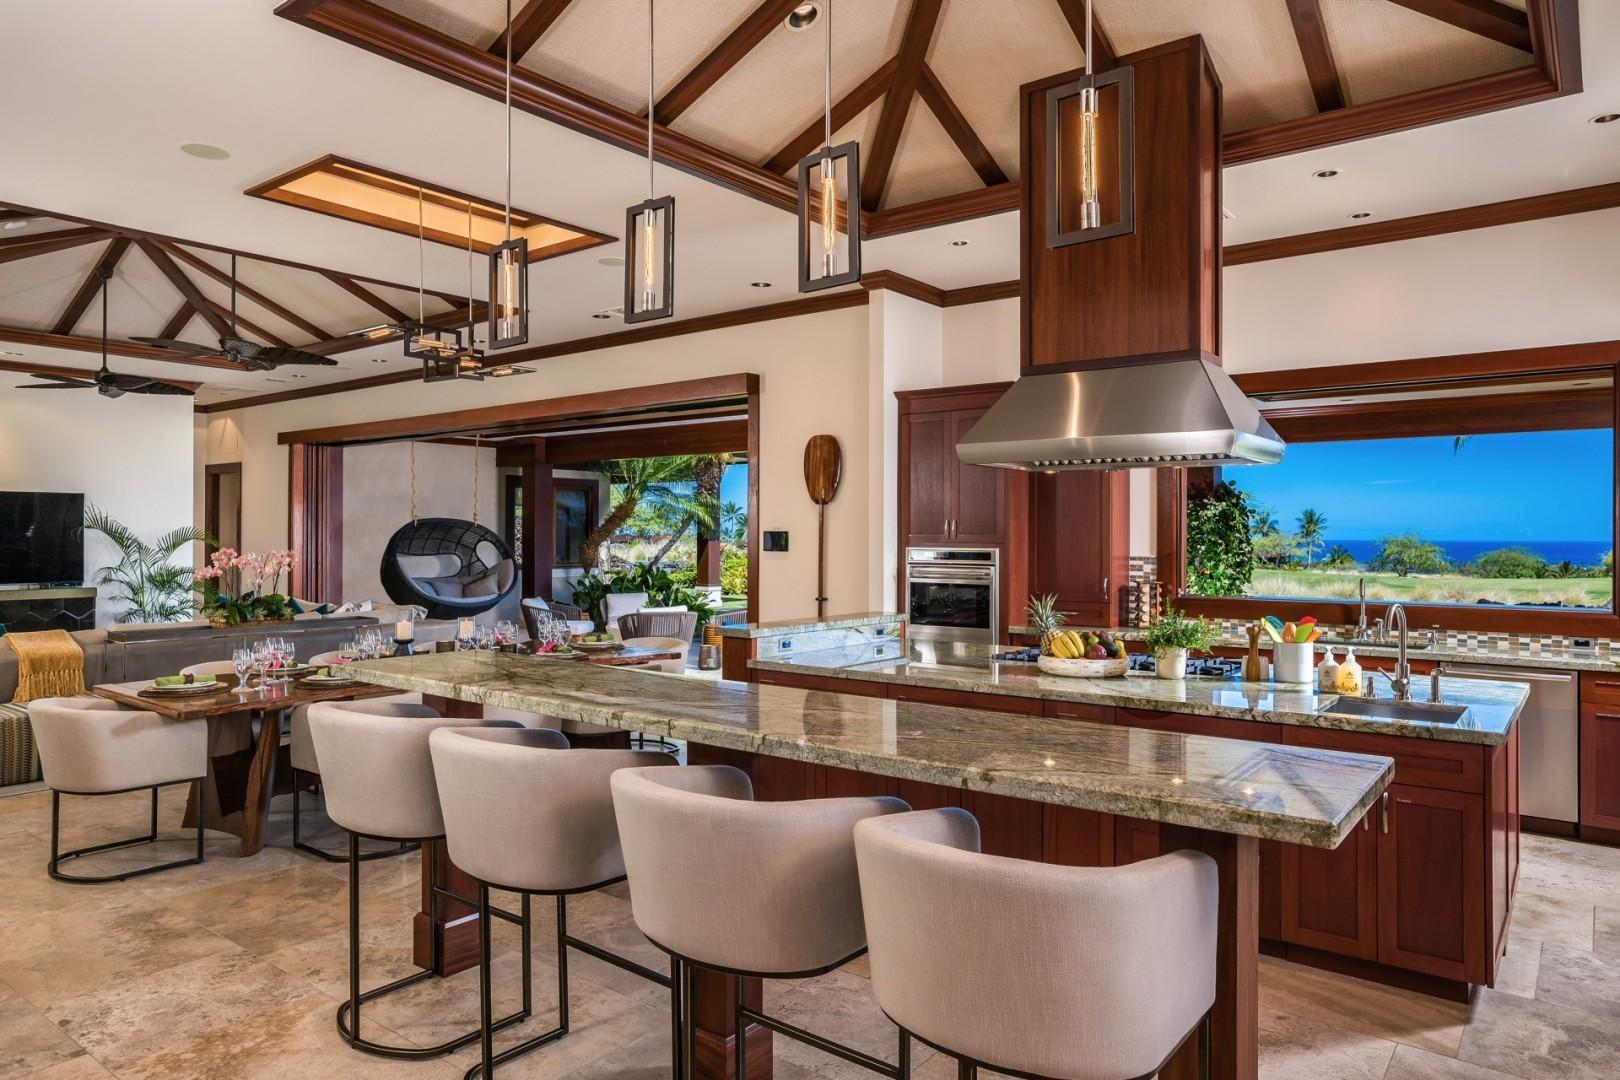 Bar seating for four facing kitchen, pool deck, and the ocean is perfect for conversation and flow during meal preparation.